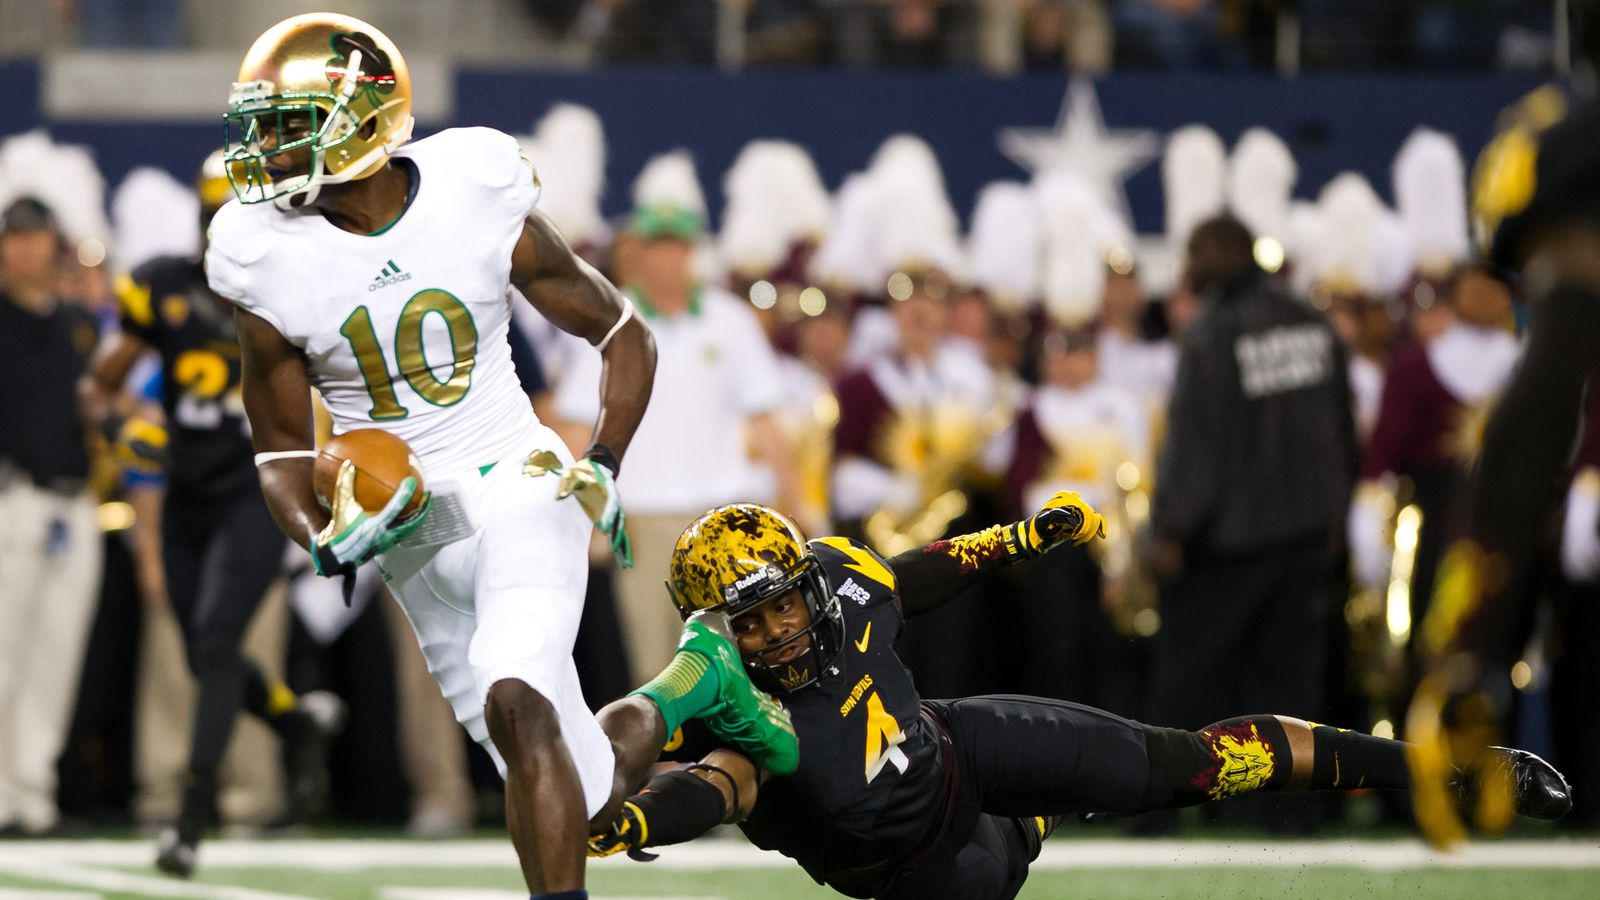 yahoo ncaa football odds what was the score of the notre dame football game